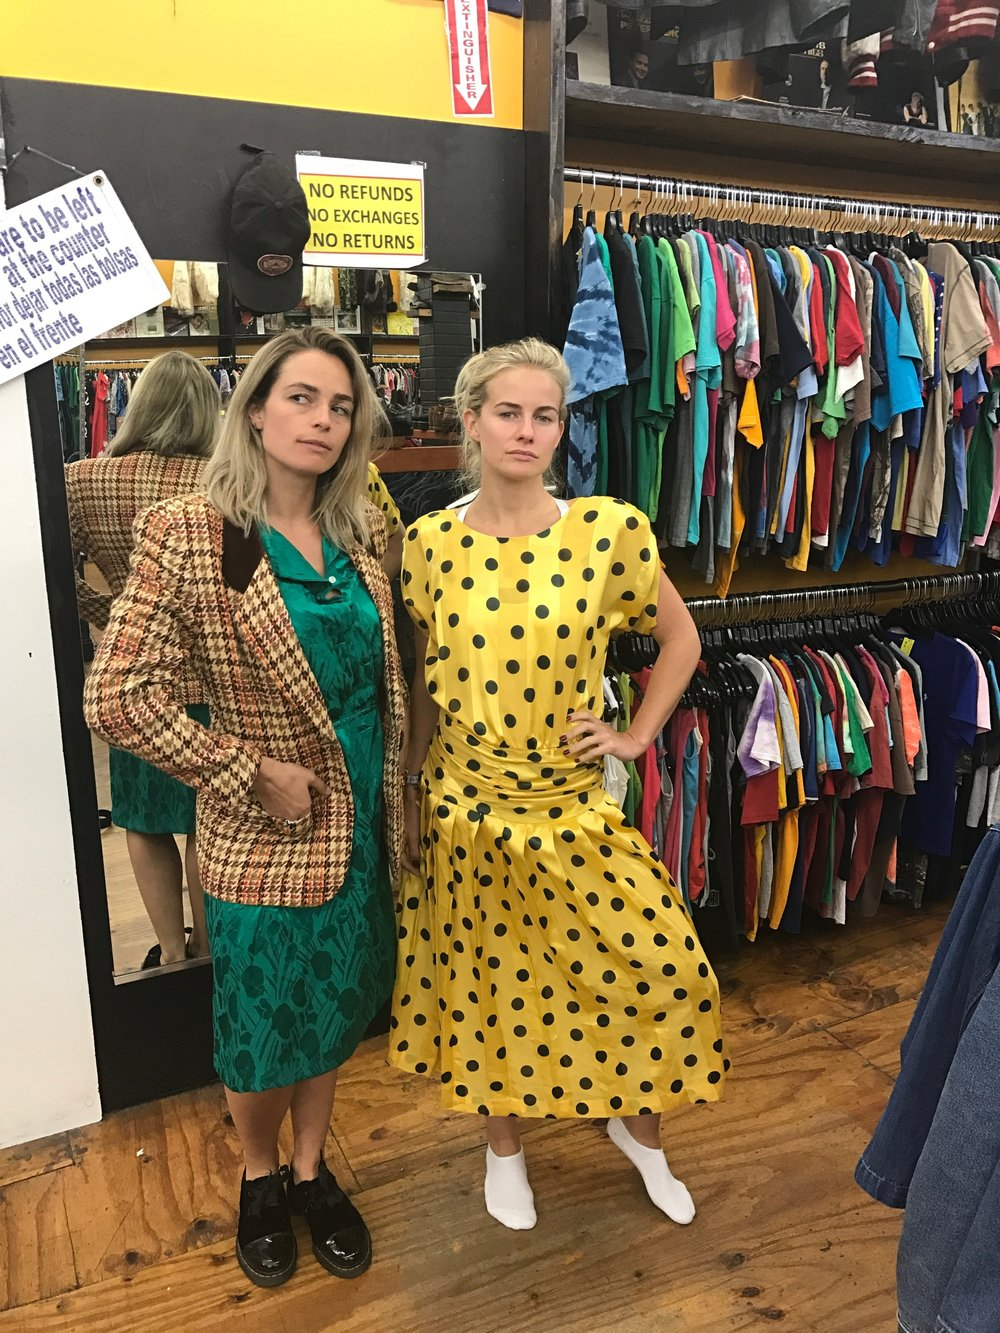 Do you even thrift store?